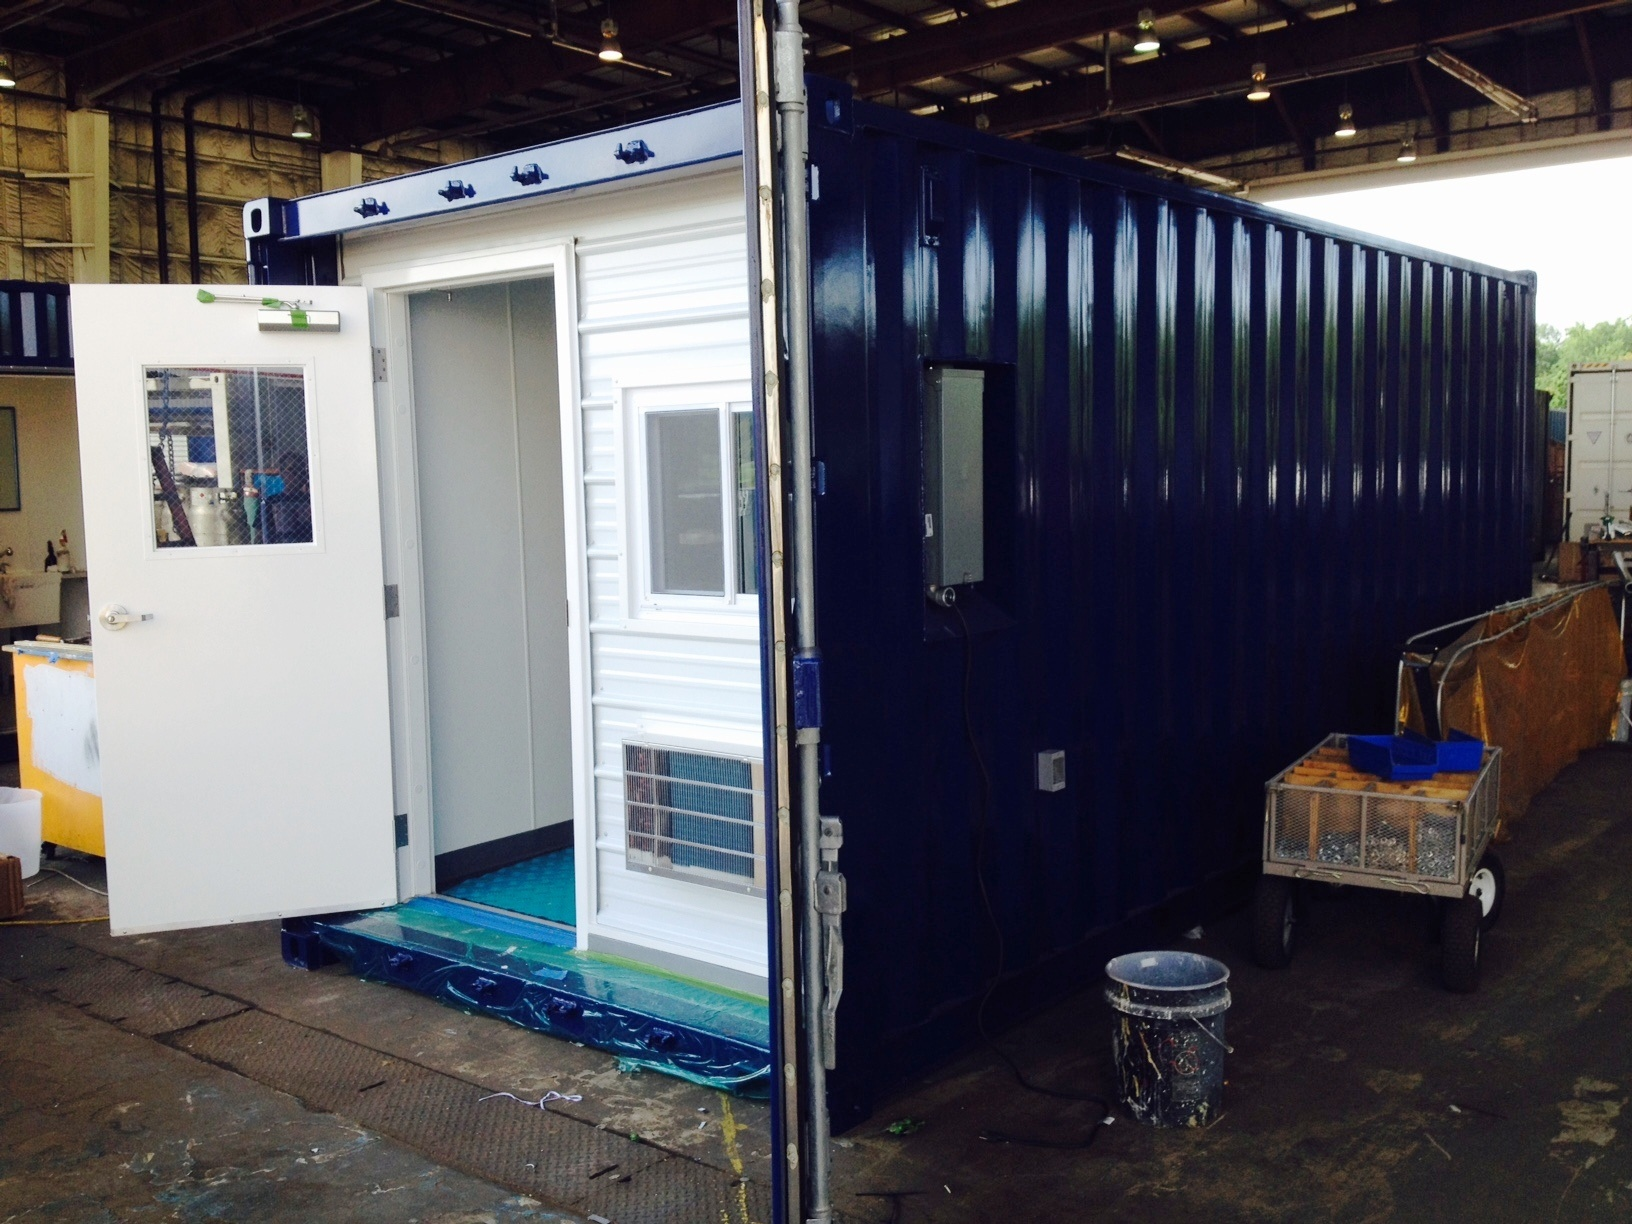 DropBox Inc., modular office, office trailer, portable office trailer, modular DropOffice, ground level office, shipping container modification